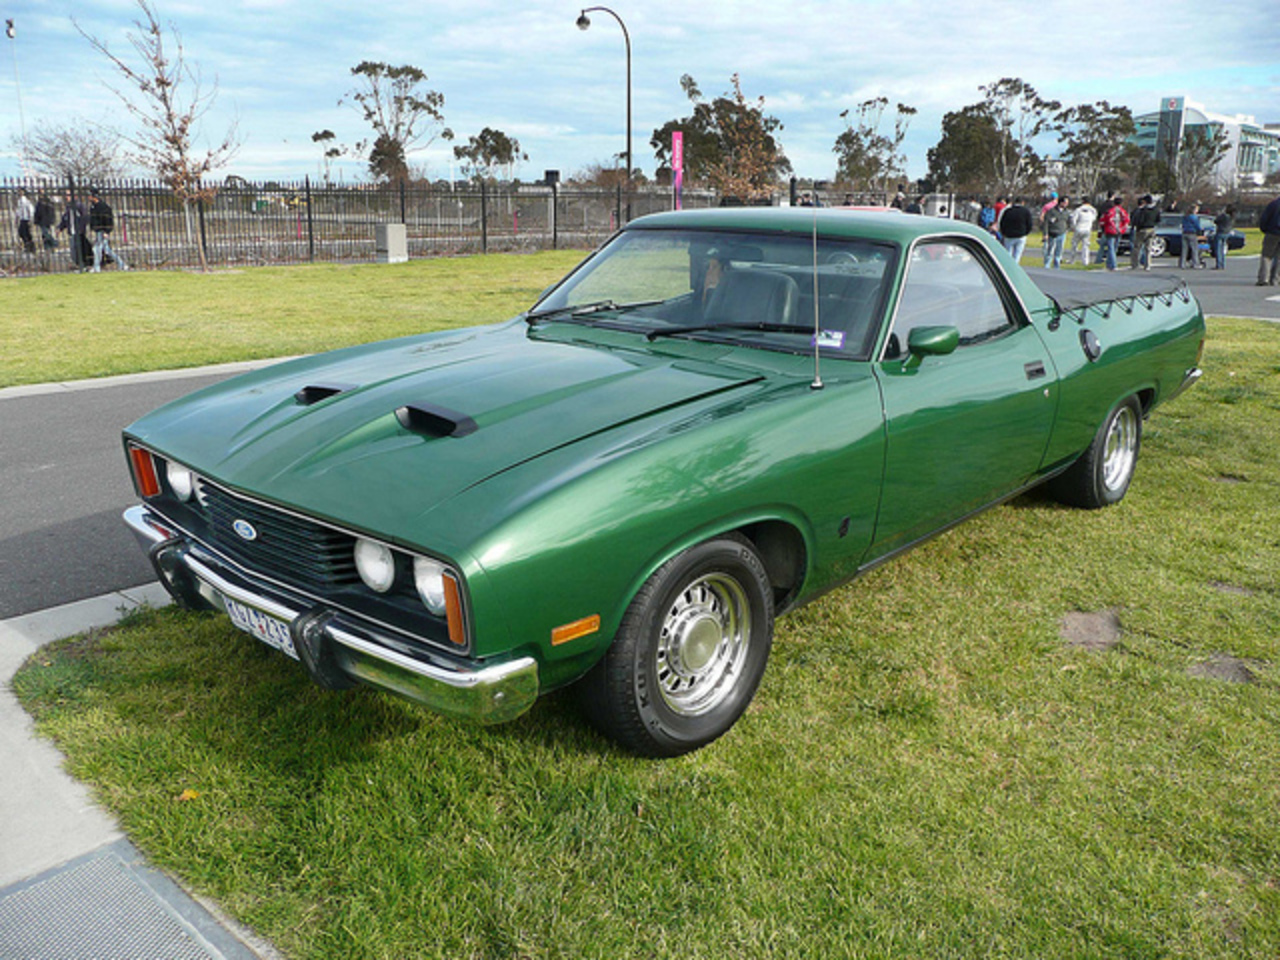 Ford Falcon XC | Flickr - Photo Sharing!